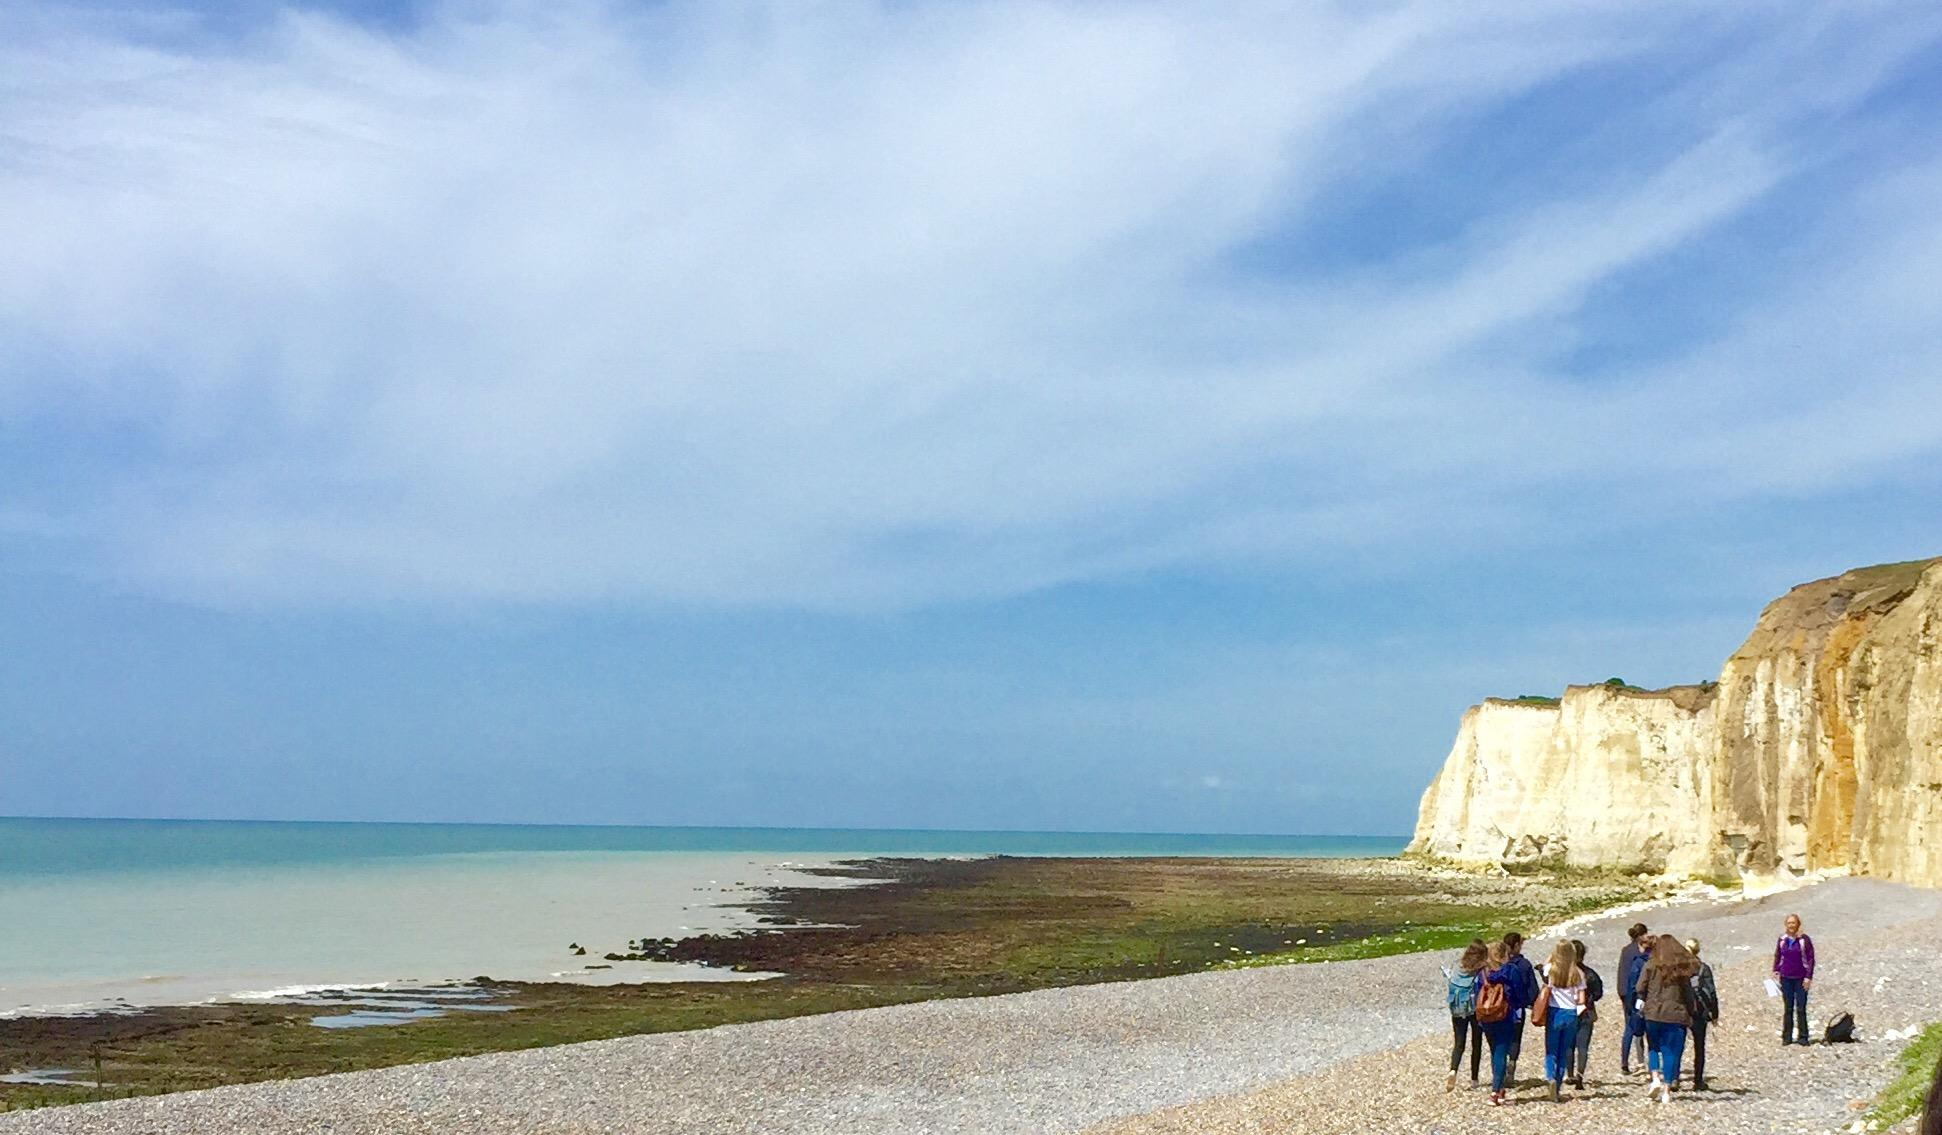 NEWHAVEN AND SEAFORD: Some students took a geography trip to Newhaven and Seaford to study the cliffs there and how the water affected the beaches of the town.